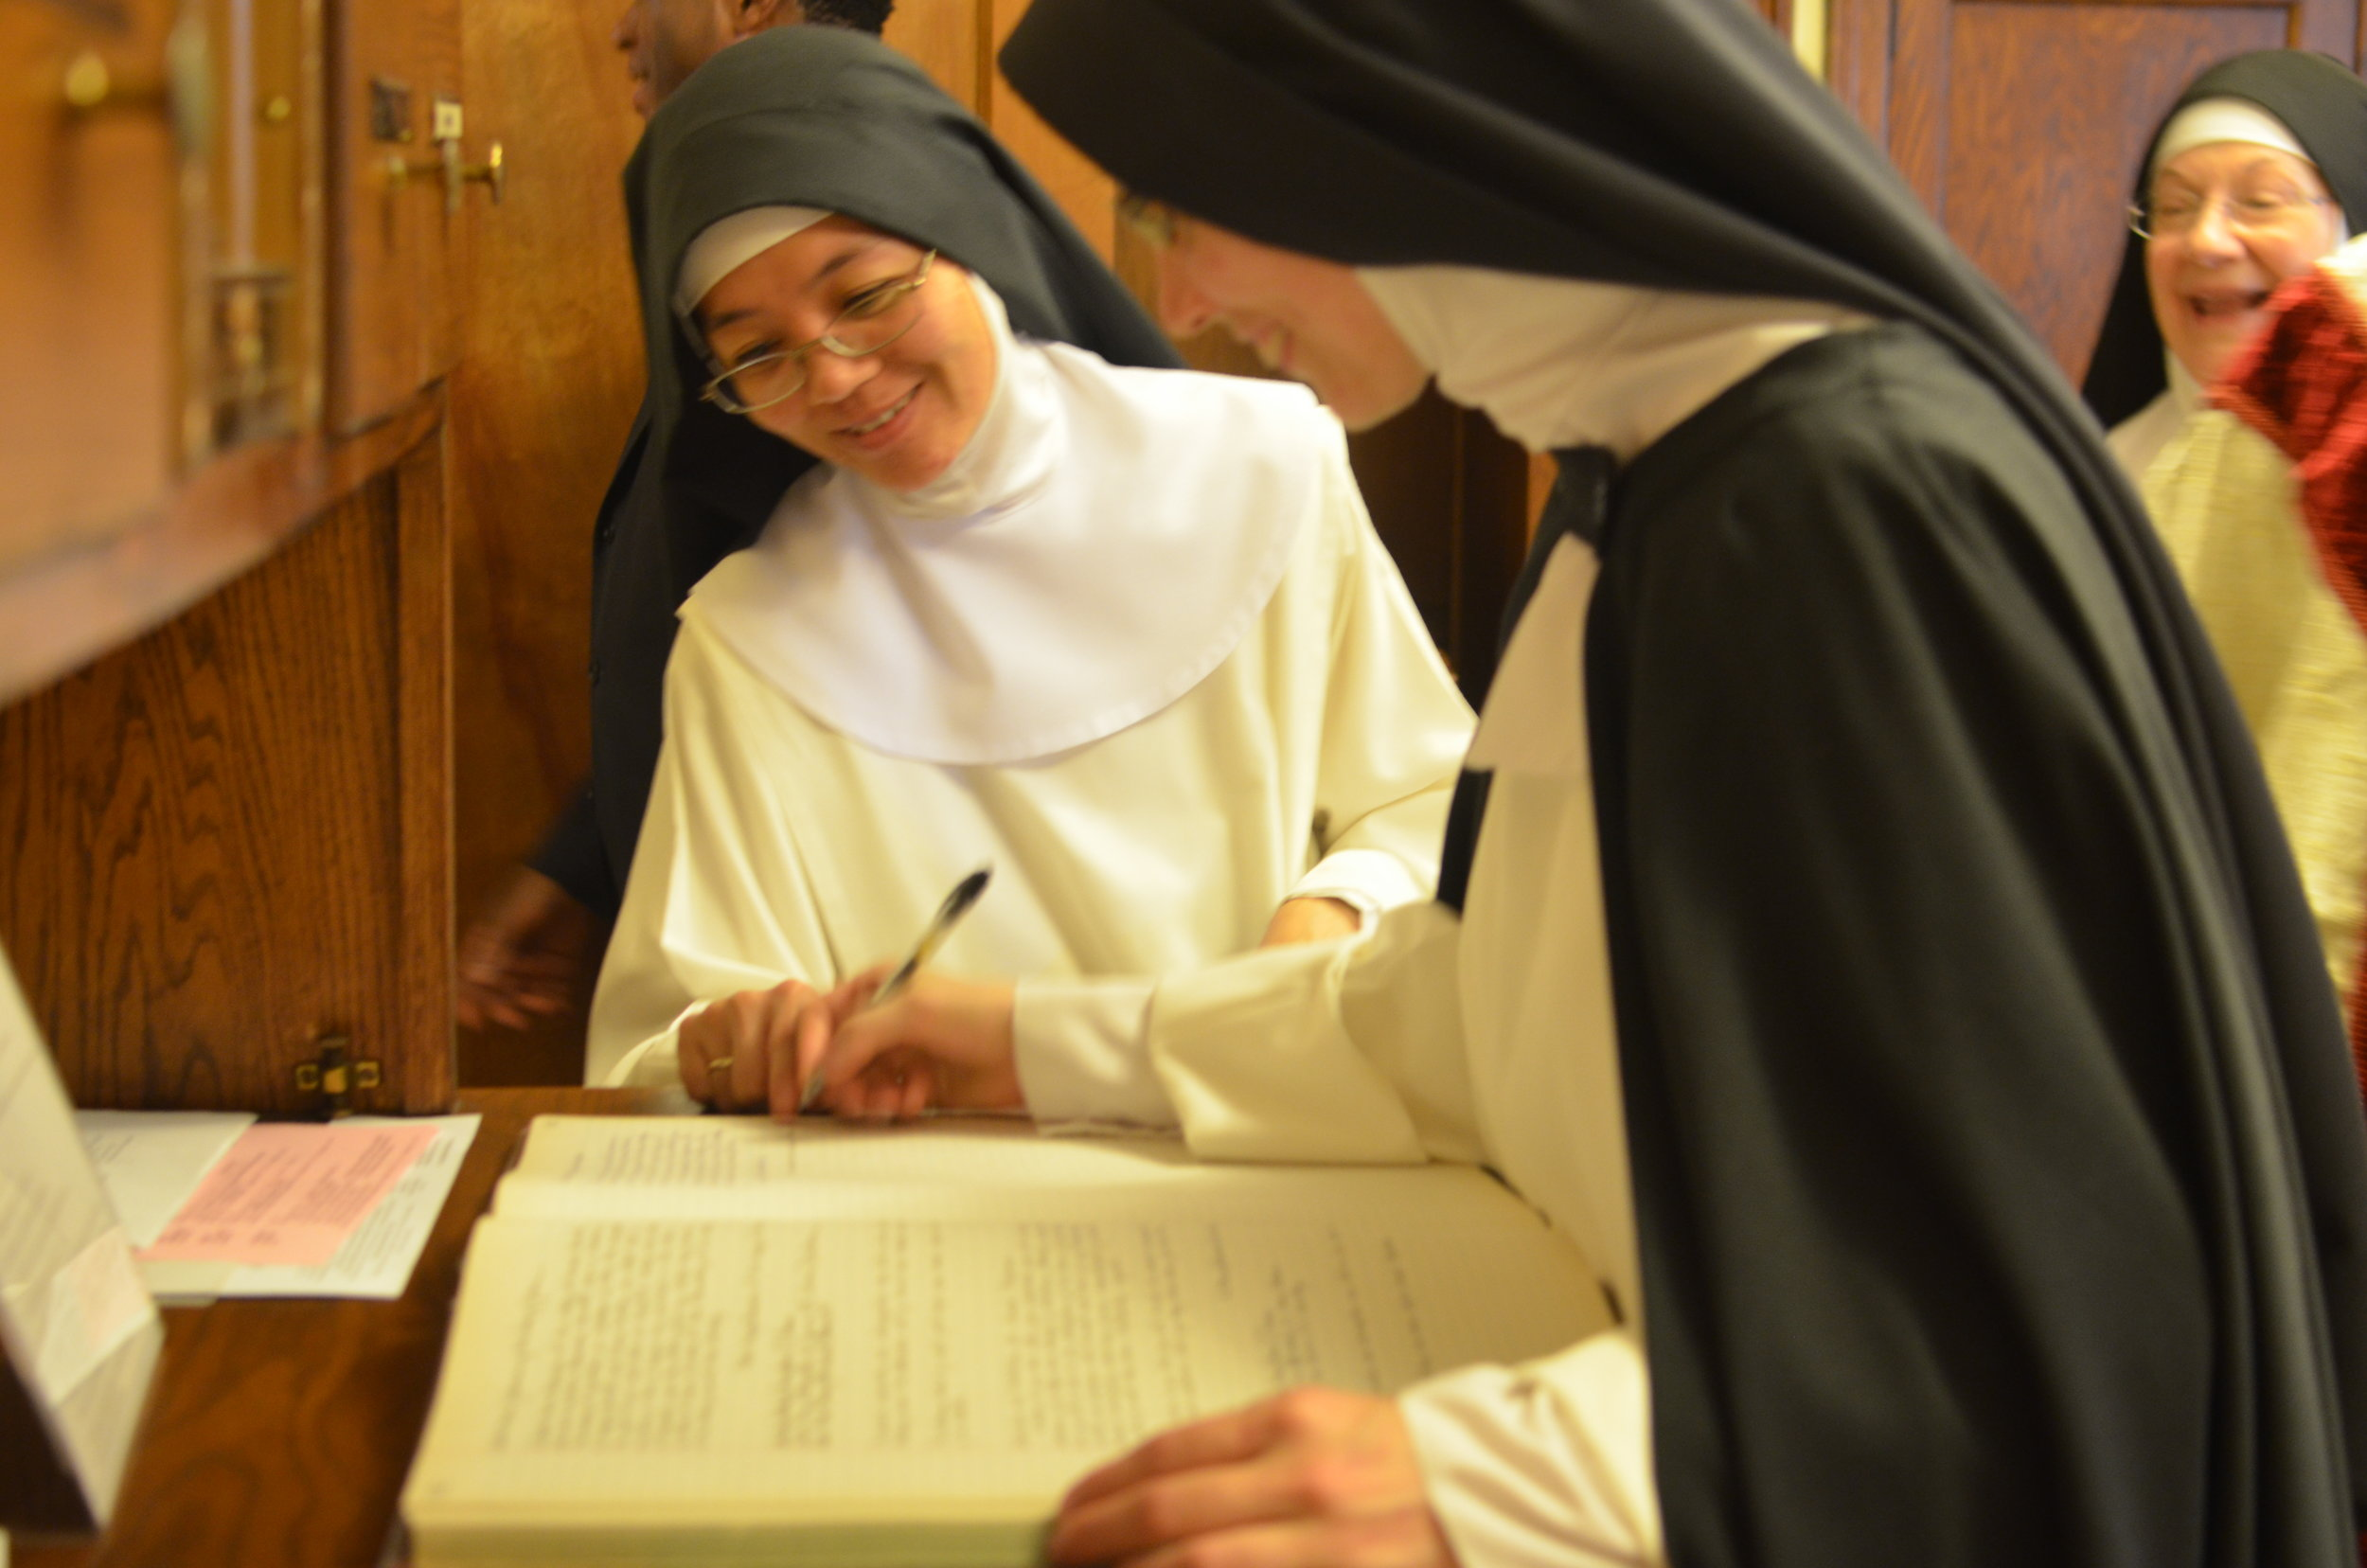 Sister signs her profession in the sacristy after Mass